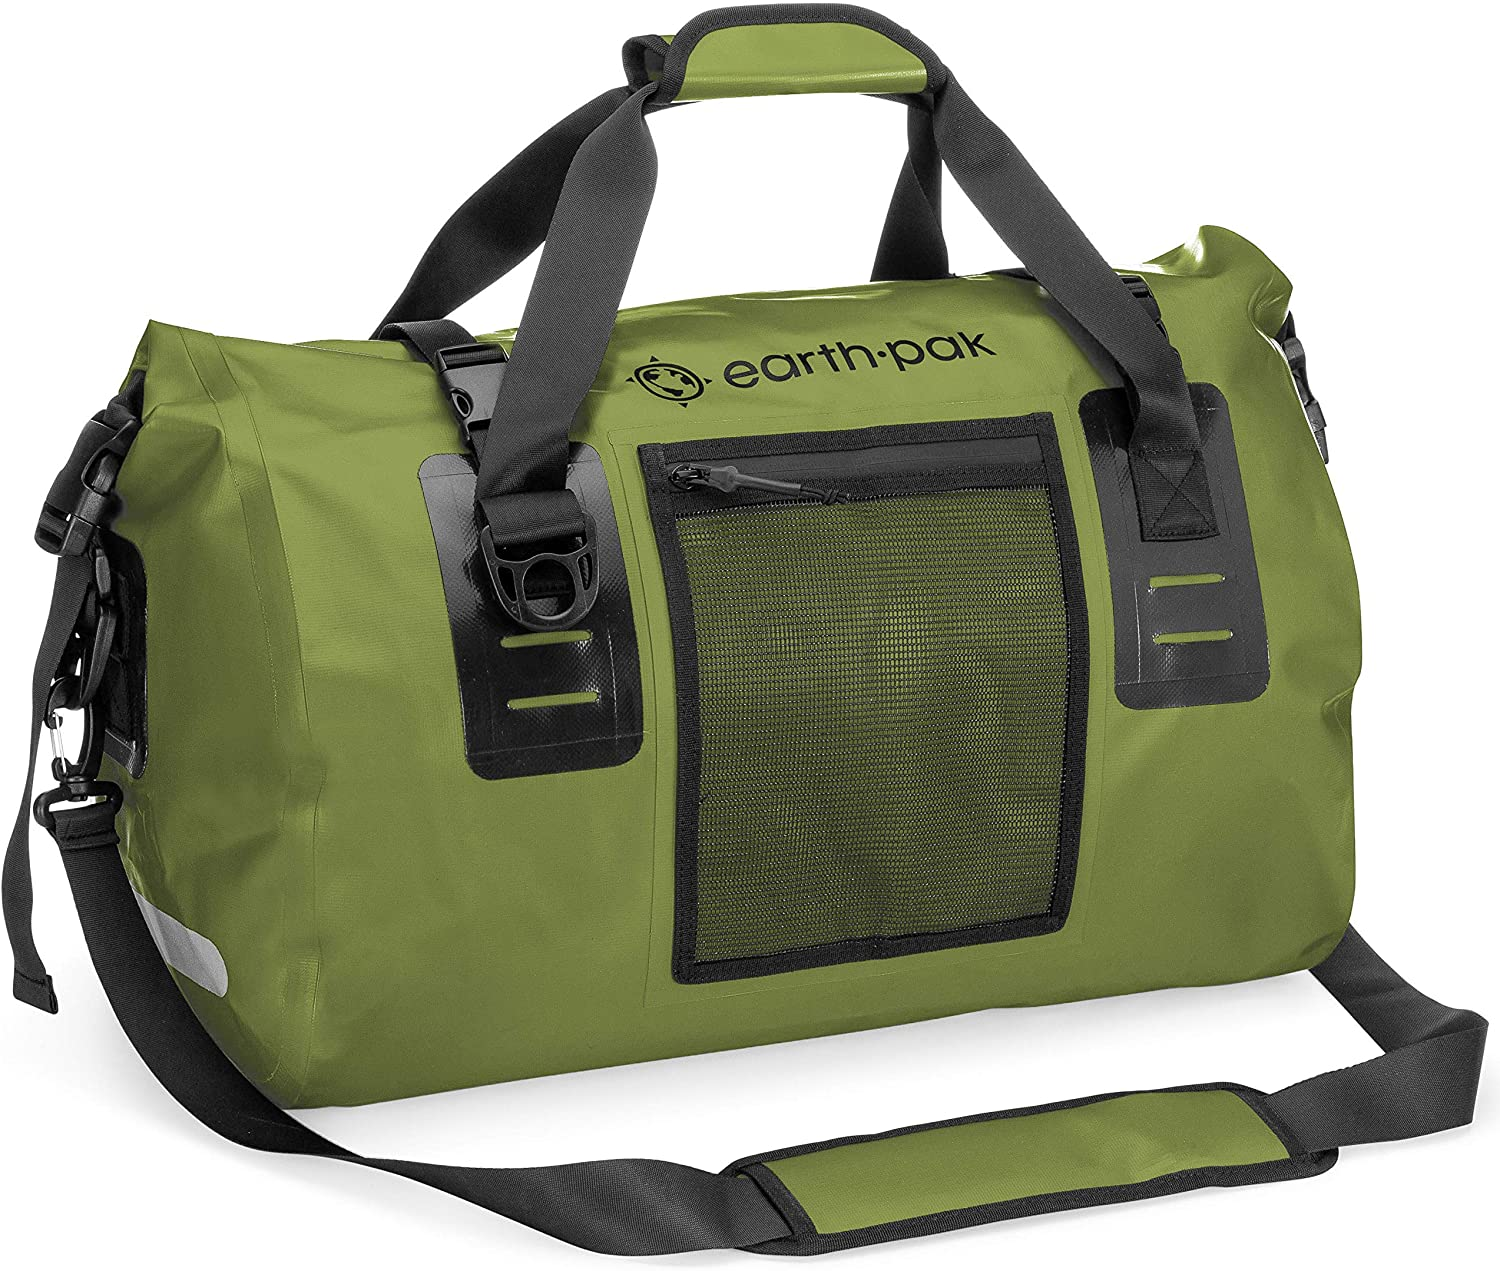 Earth latest Pak Waterproof Duffel Bag- service Perfect Kind Travel of Any for